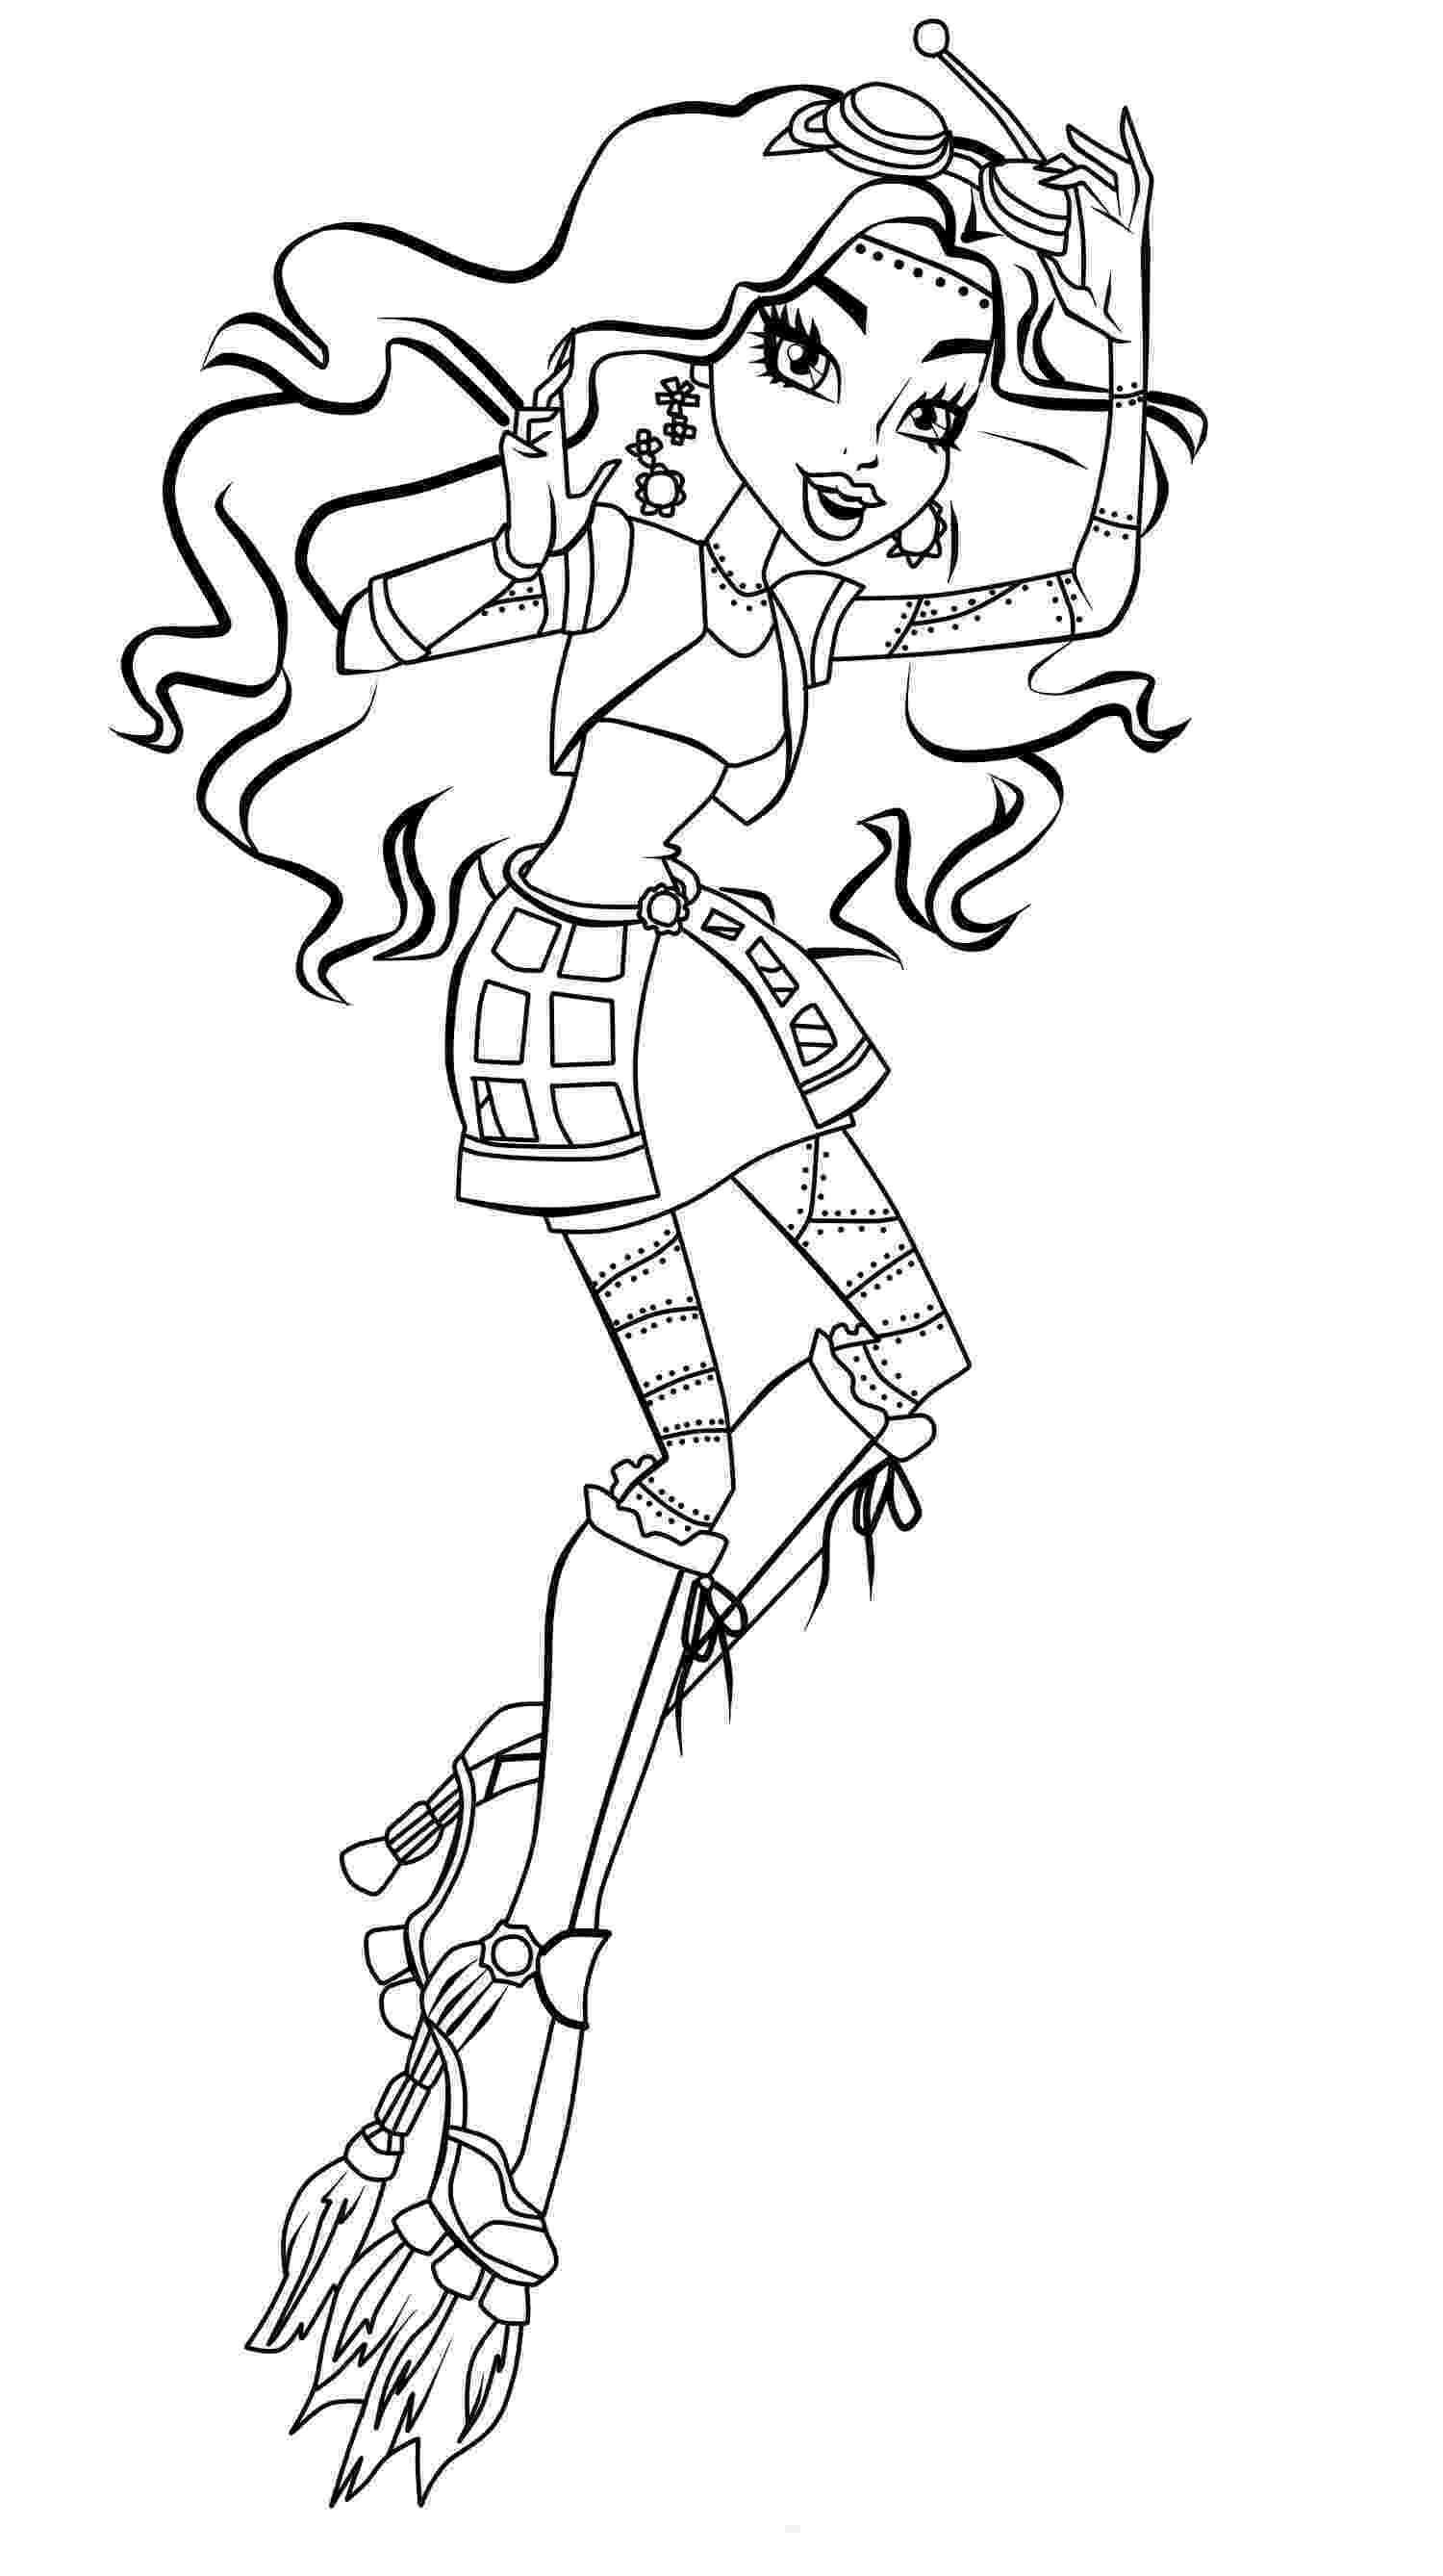 monsters high coloring pages print monster high coloring pages for free or download high monsters coloring pages